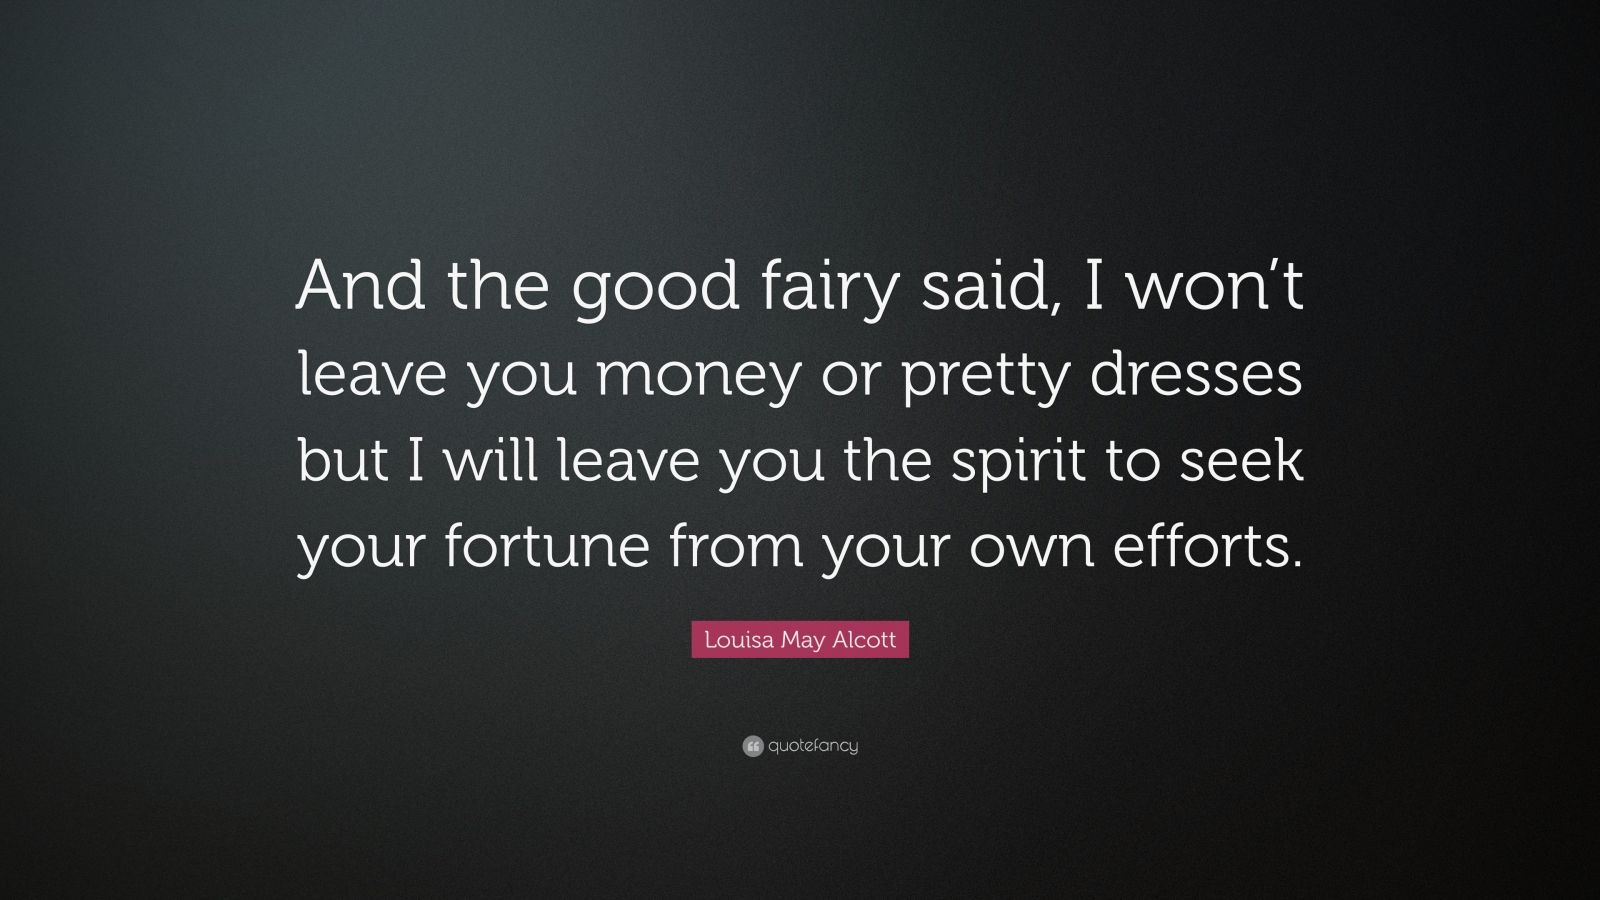 """Louisa May Alcott Quote: """"And the good fairy said, I won't leave you money or pretty dresses but I will leave you the spirit to seek your fortune from your own efforts."""""""